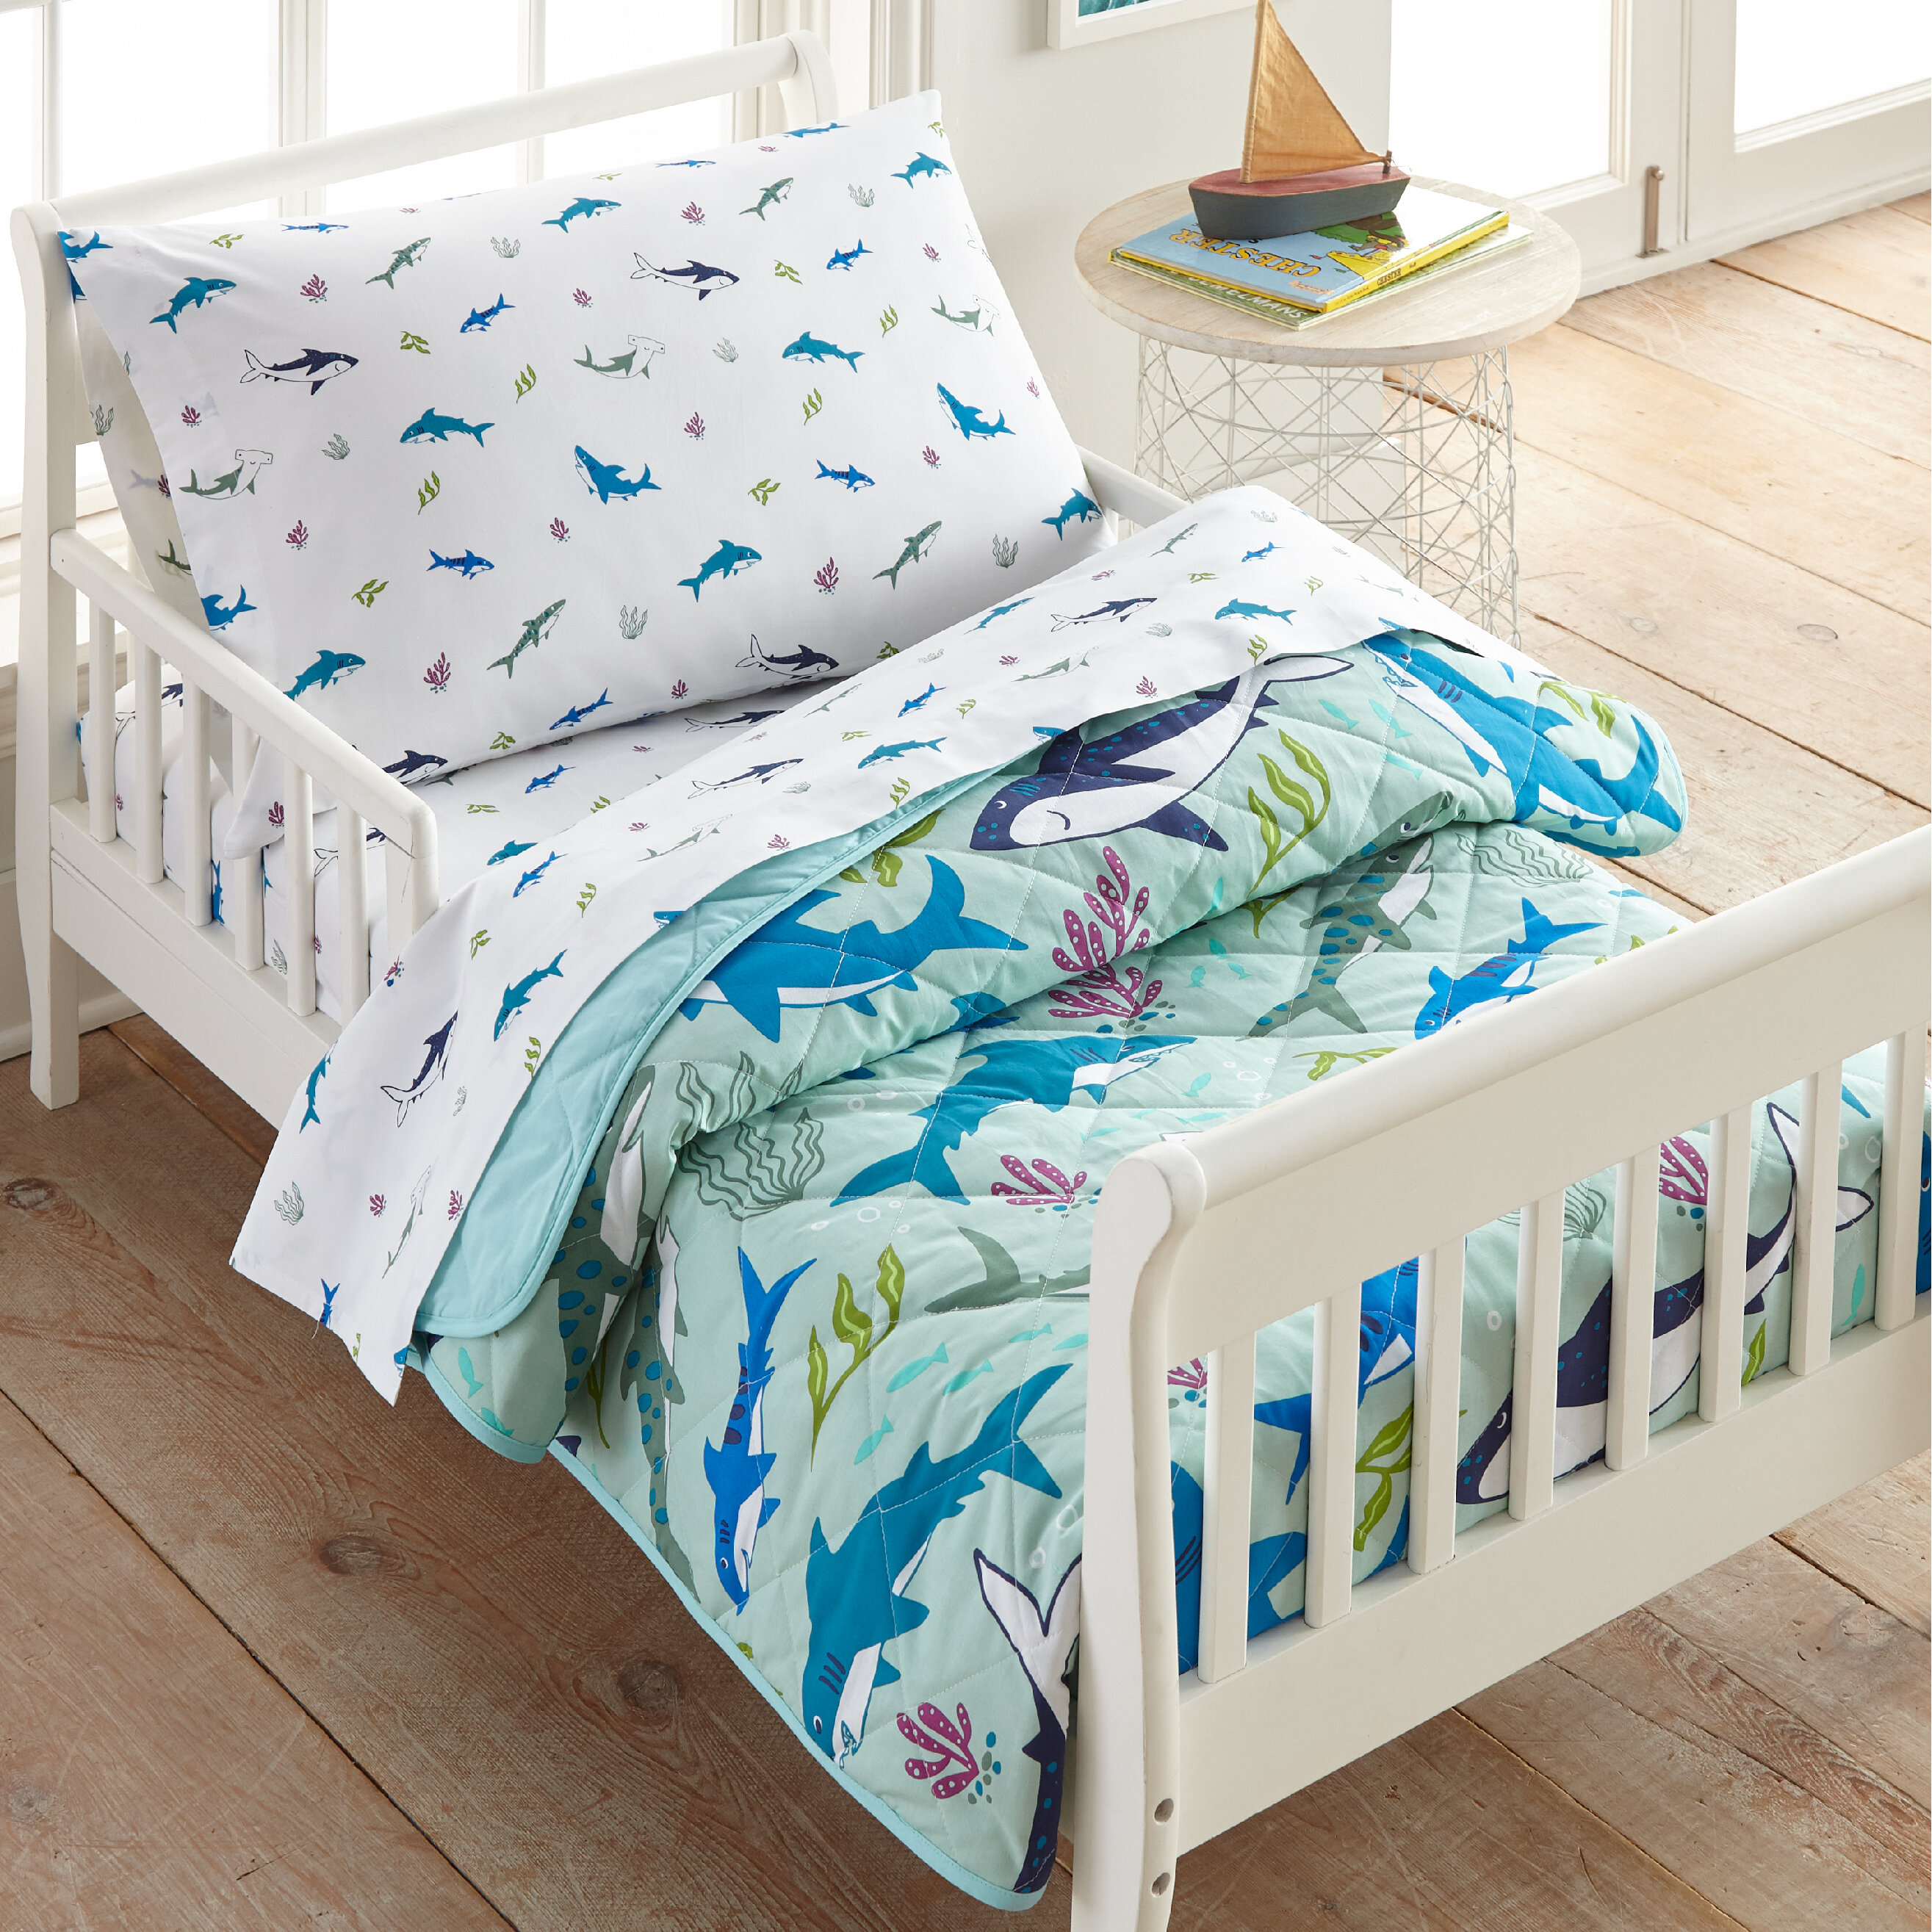 Wildkin Shark Attack Cotton 4 Piece Toddler Bedding Set Wayfair